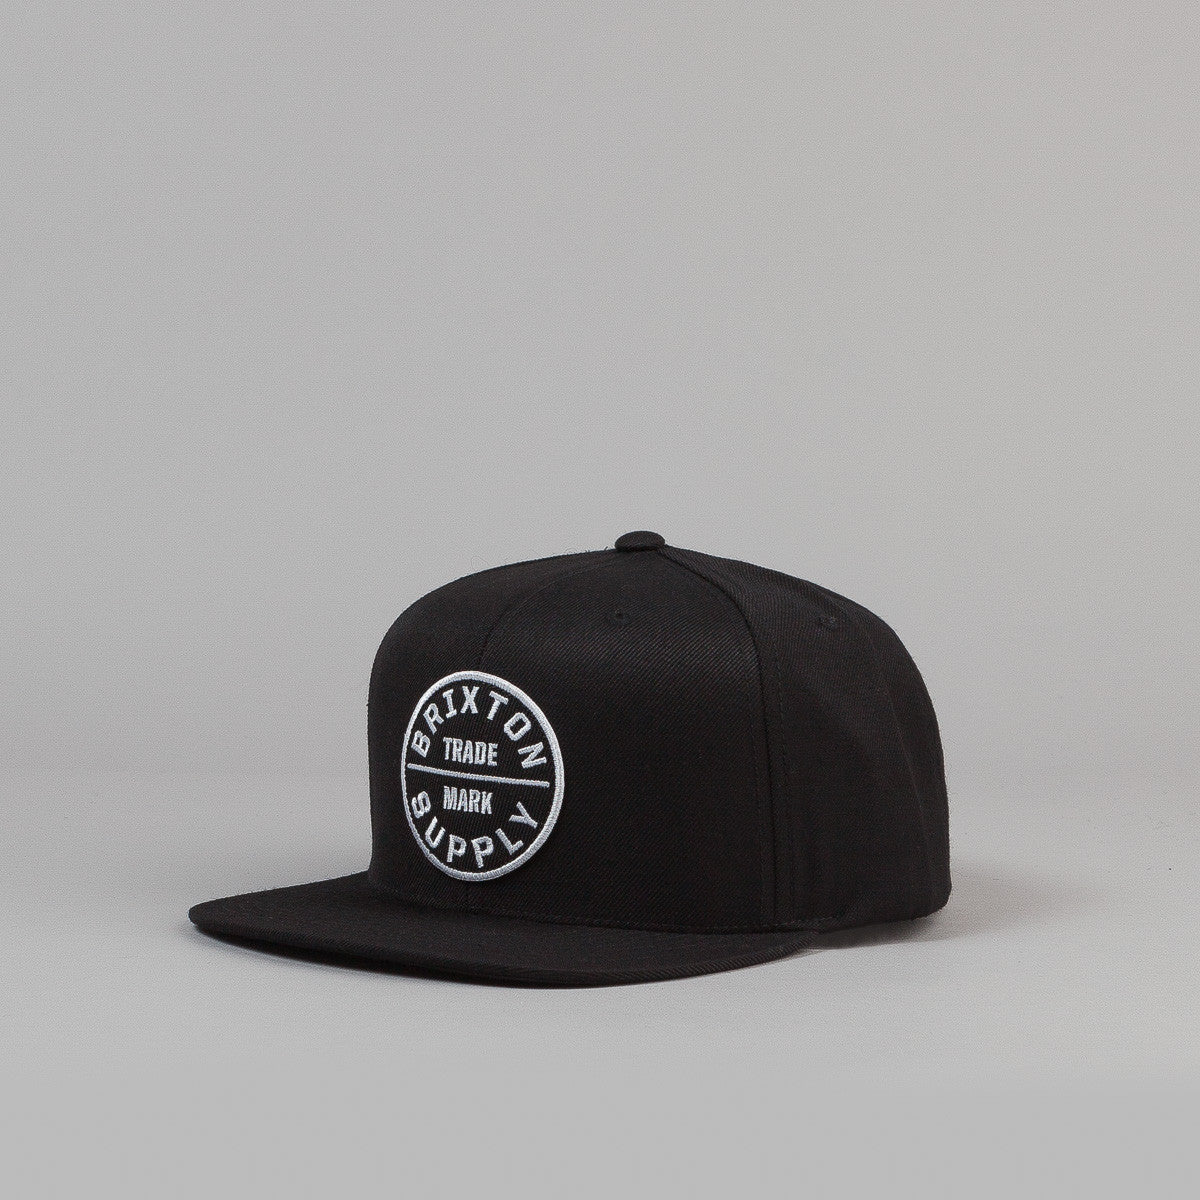 Brixton Oath III 6 Panel Snap Back Cap